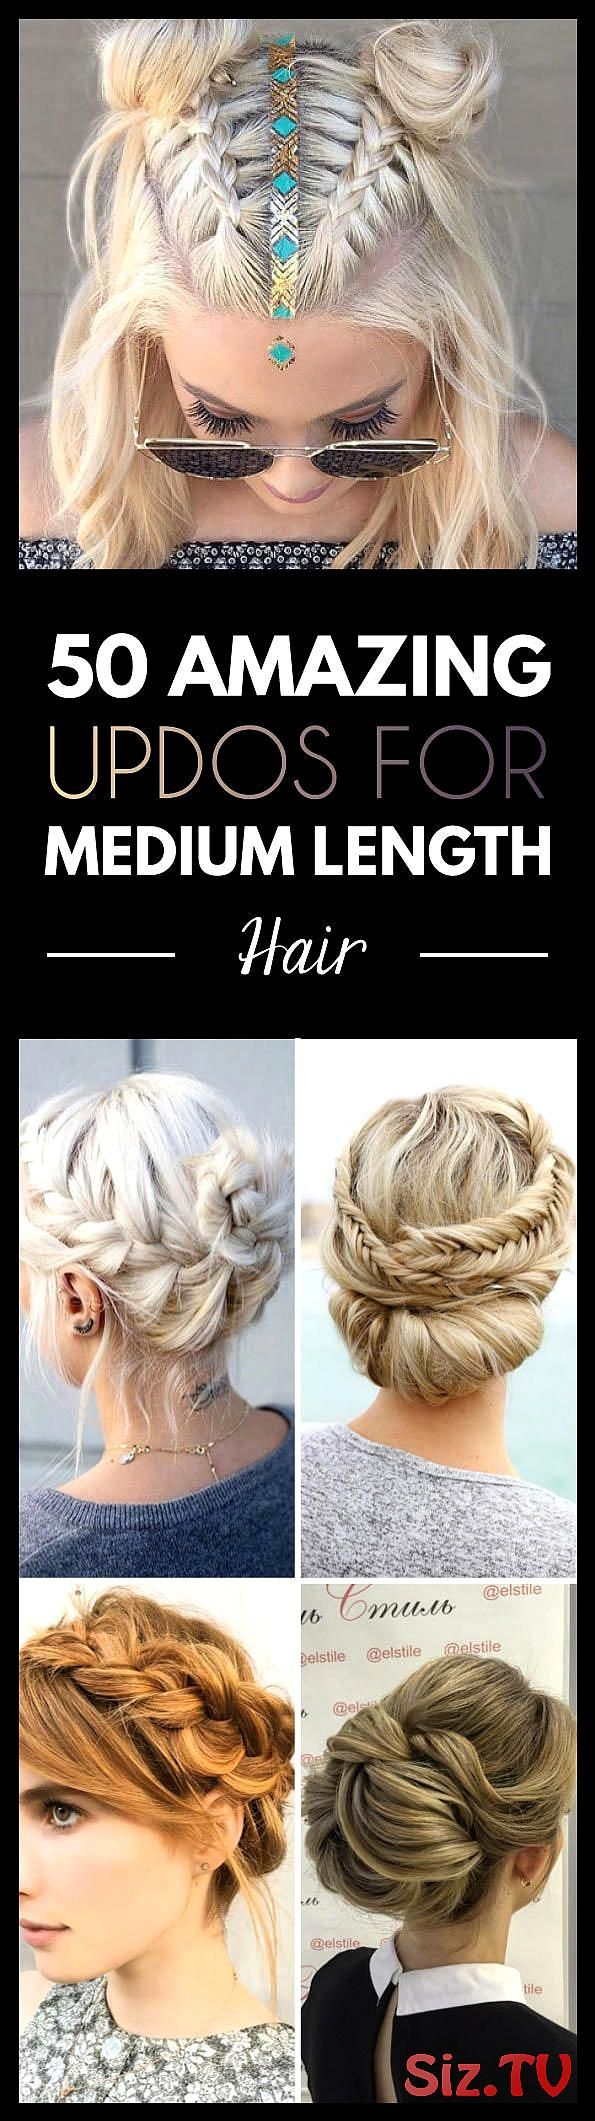 50 Amazing Updos For Medium Length Hair 50 Amazing Updos For Medium Length Hair Up Or Down Is Usually The First Question Women Ask Themselves When It ...